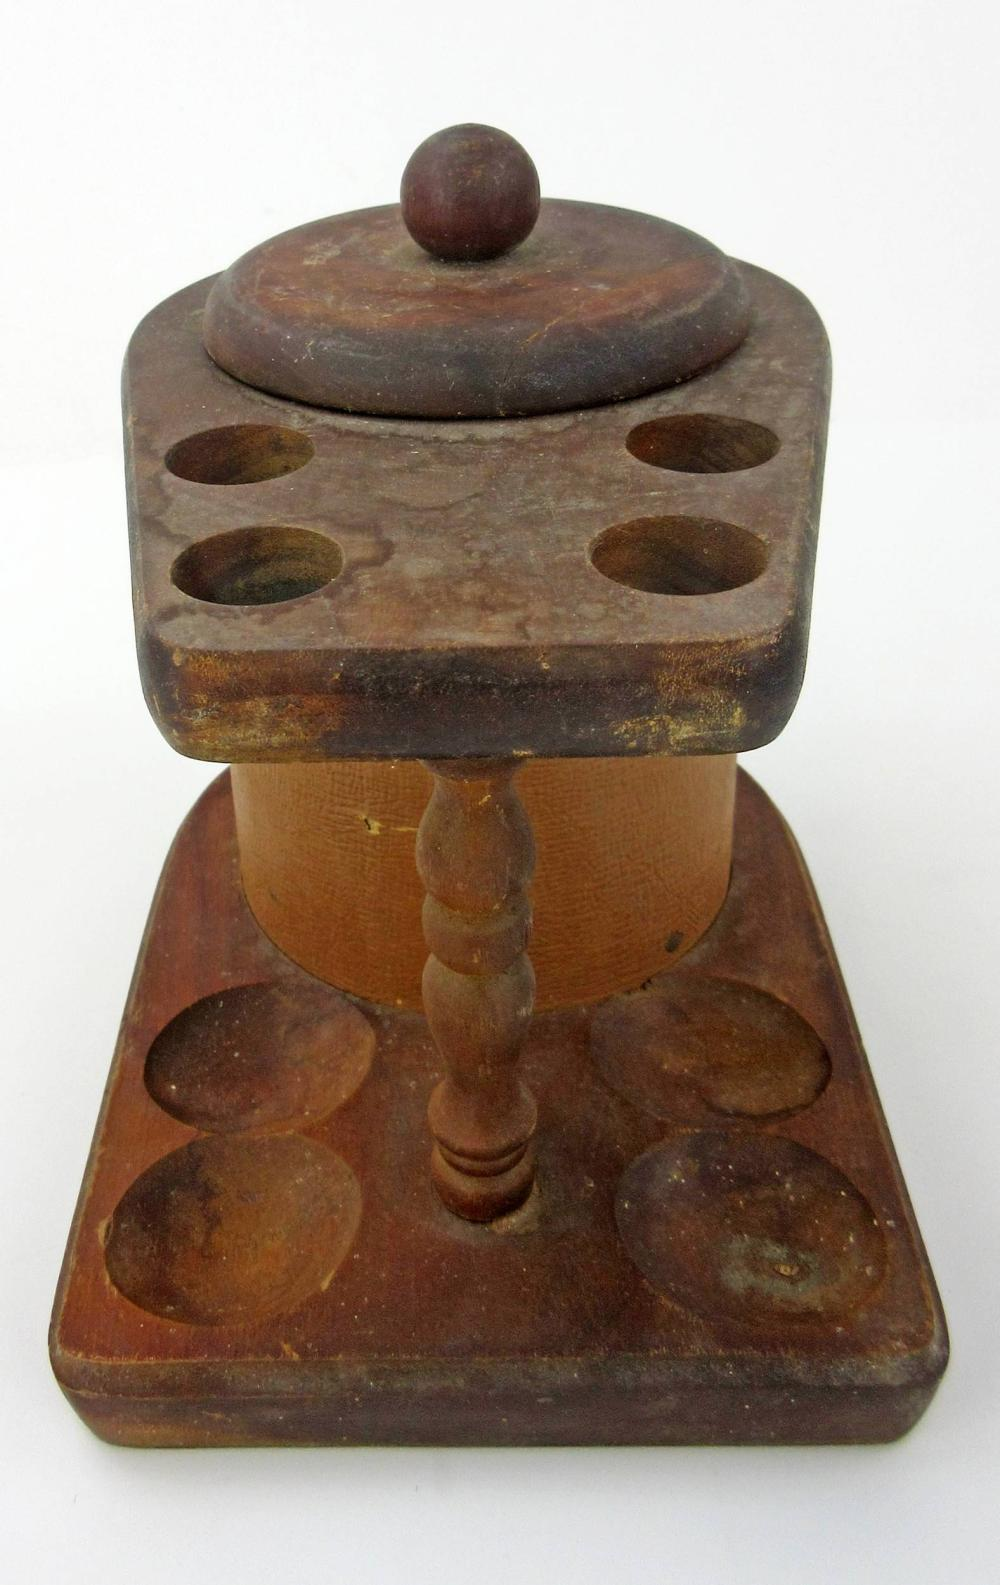 Jack Kerouac's Personally Owned Pipe Stand, Estate Certified